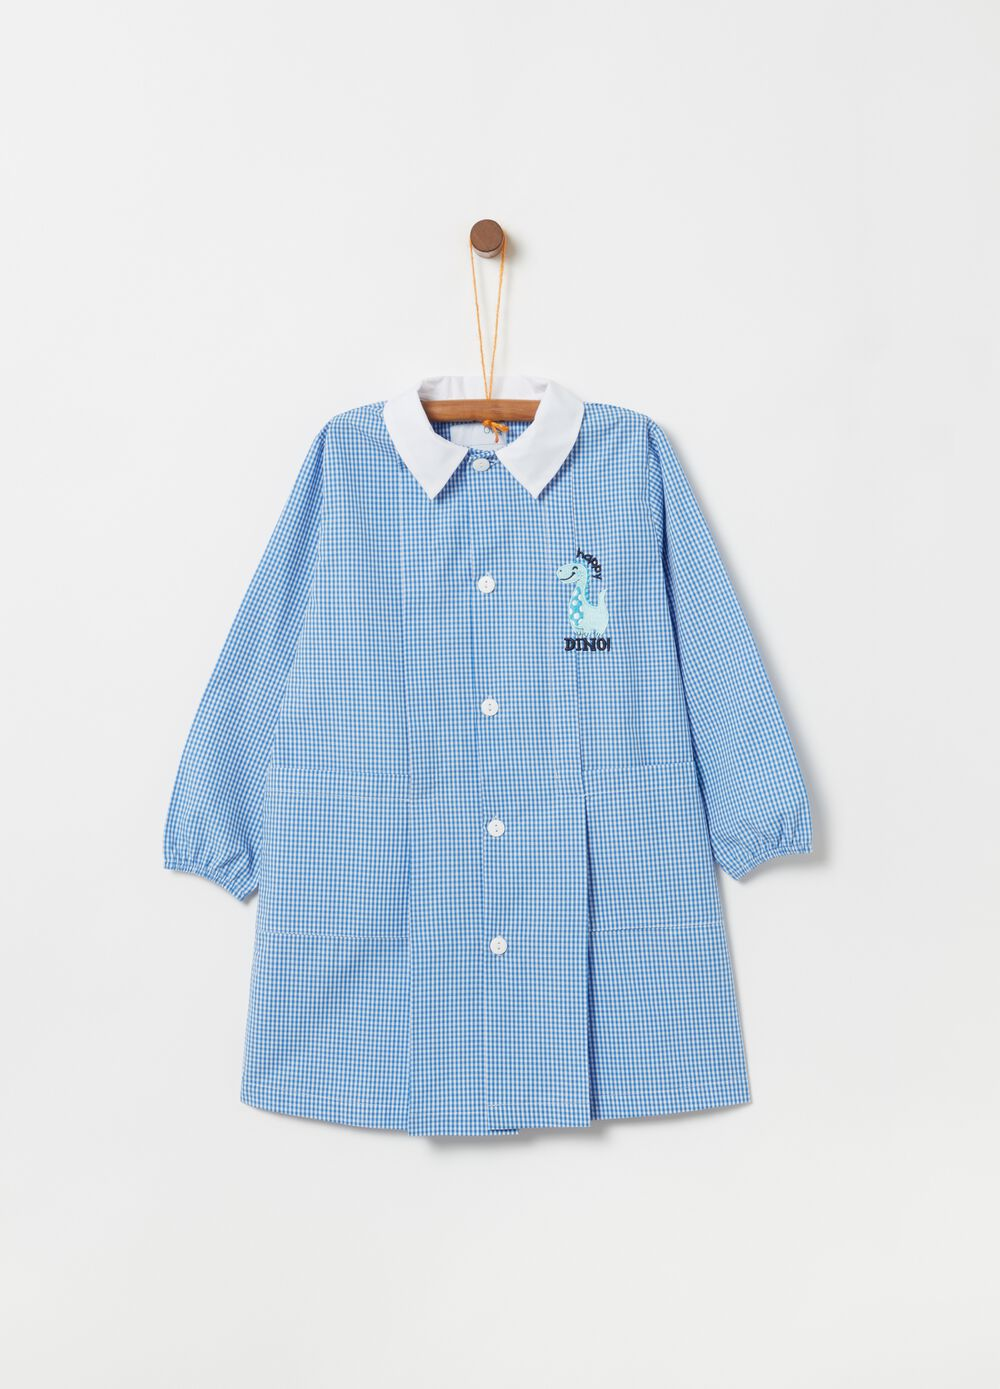 Patterned smock with embroidery and pockets